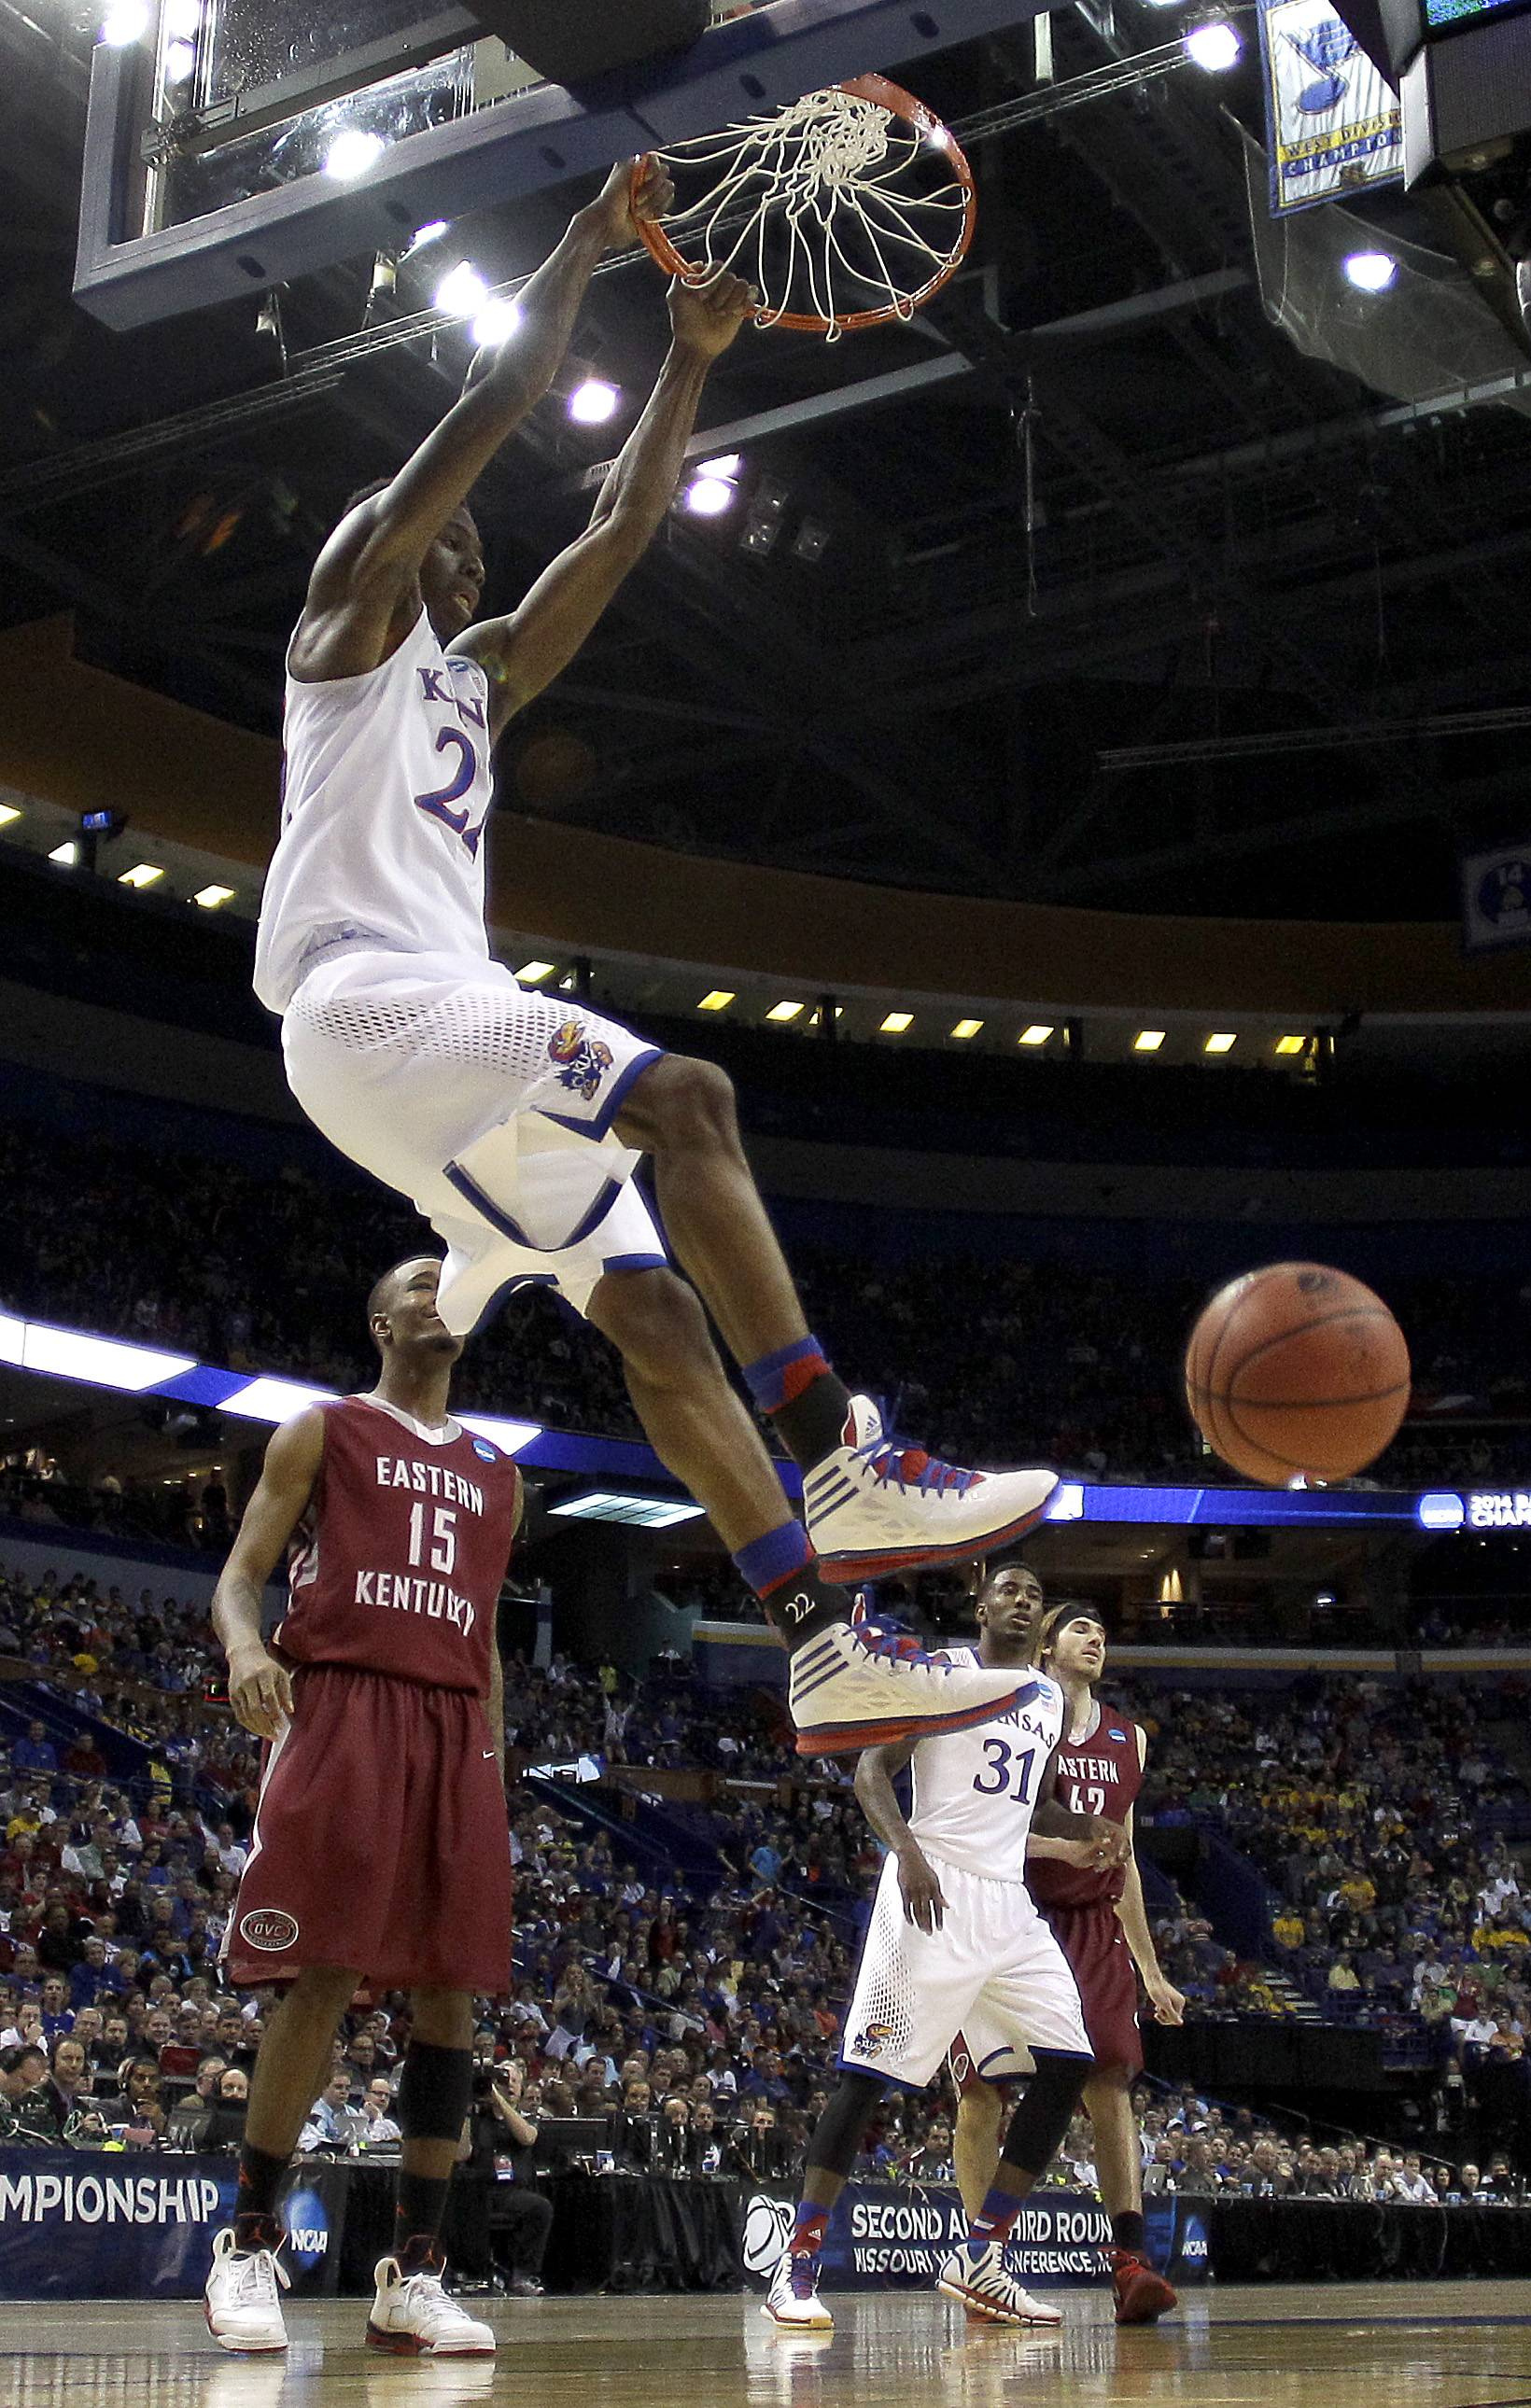 Kansas' Andrew Wiggins gets past Eastern Kentucky's Orlando Williams (15) to dunk the ball during the first half of a second-round game in the NCAA college basketball tournament, Friday, March 21, 2014, in St. Louis. Kansas won the game 80-69.